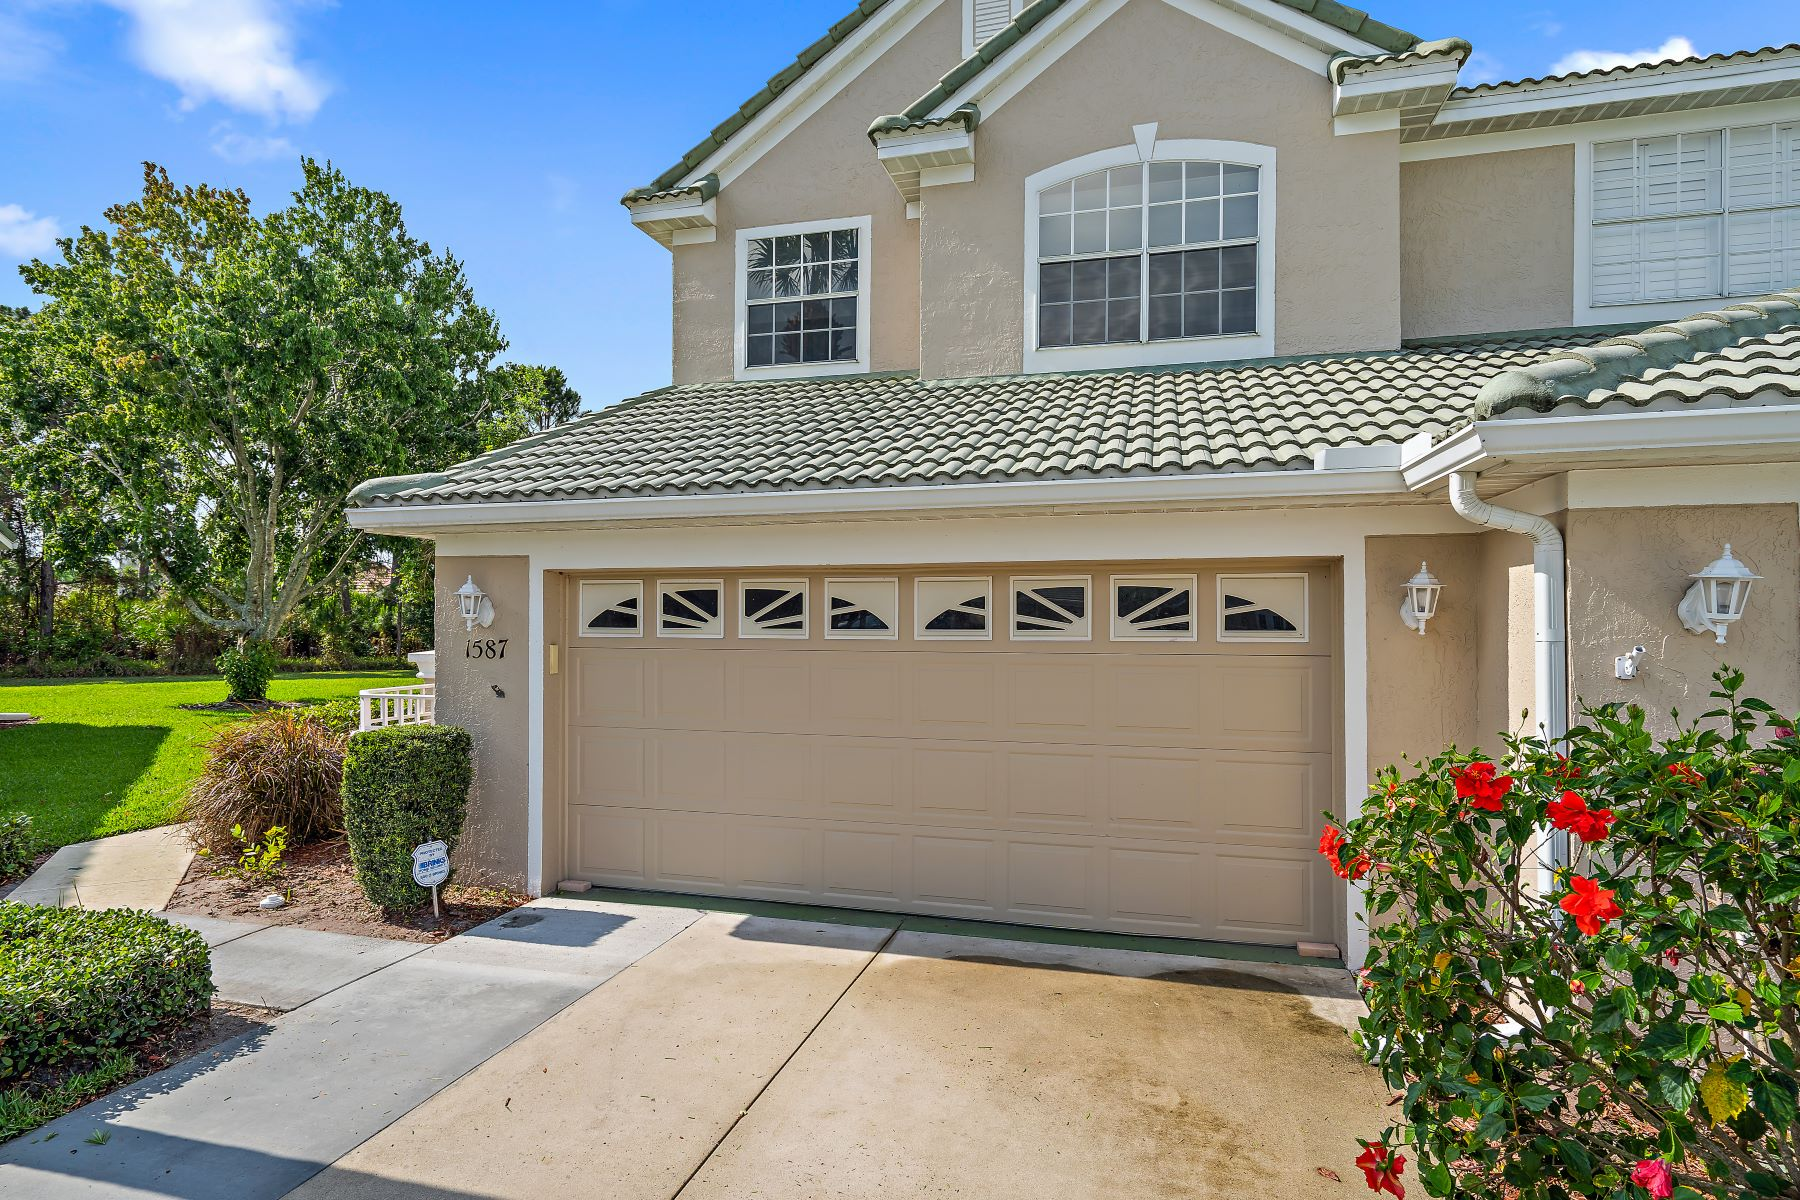 townhouses for Active at 1587 Sw Harbour Isles Cir 55 Port St. Lucie, Florida 34986 United States